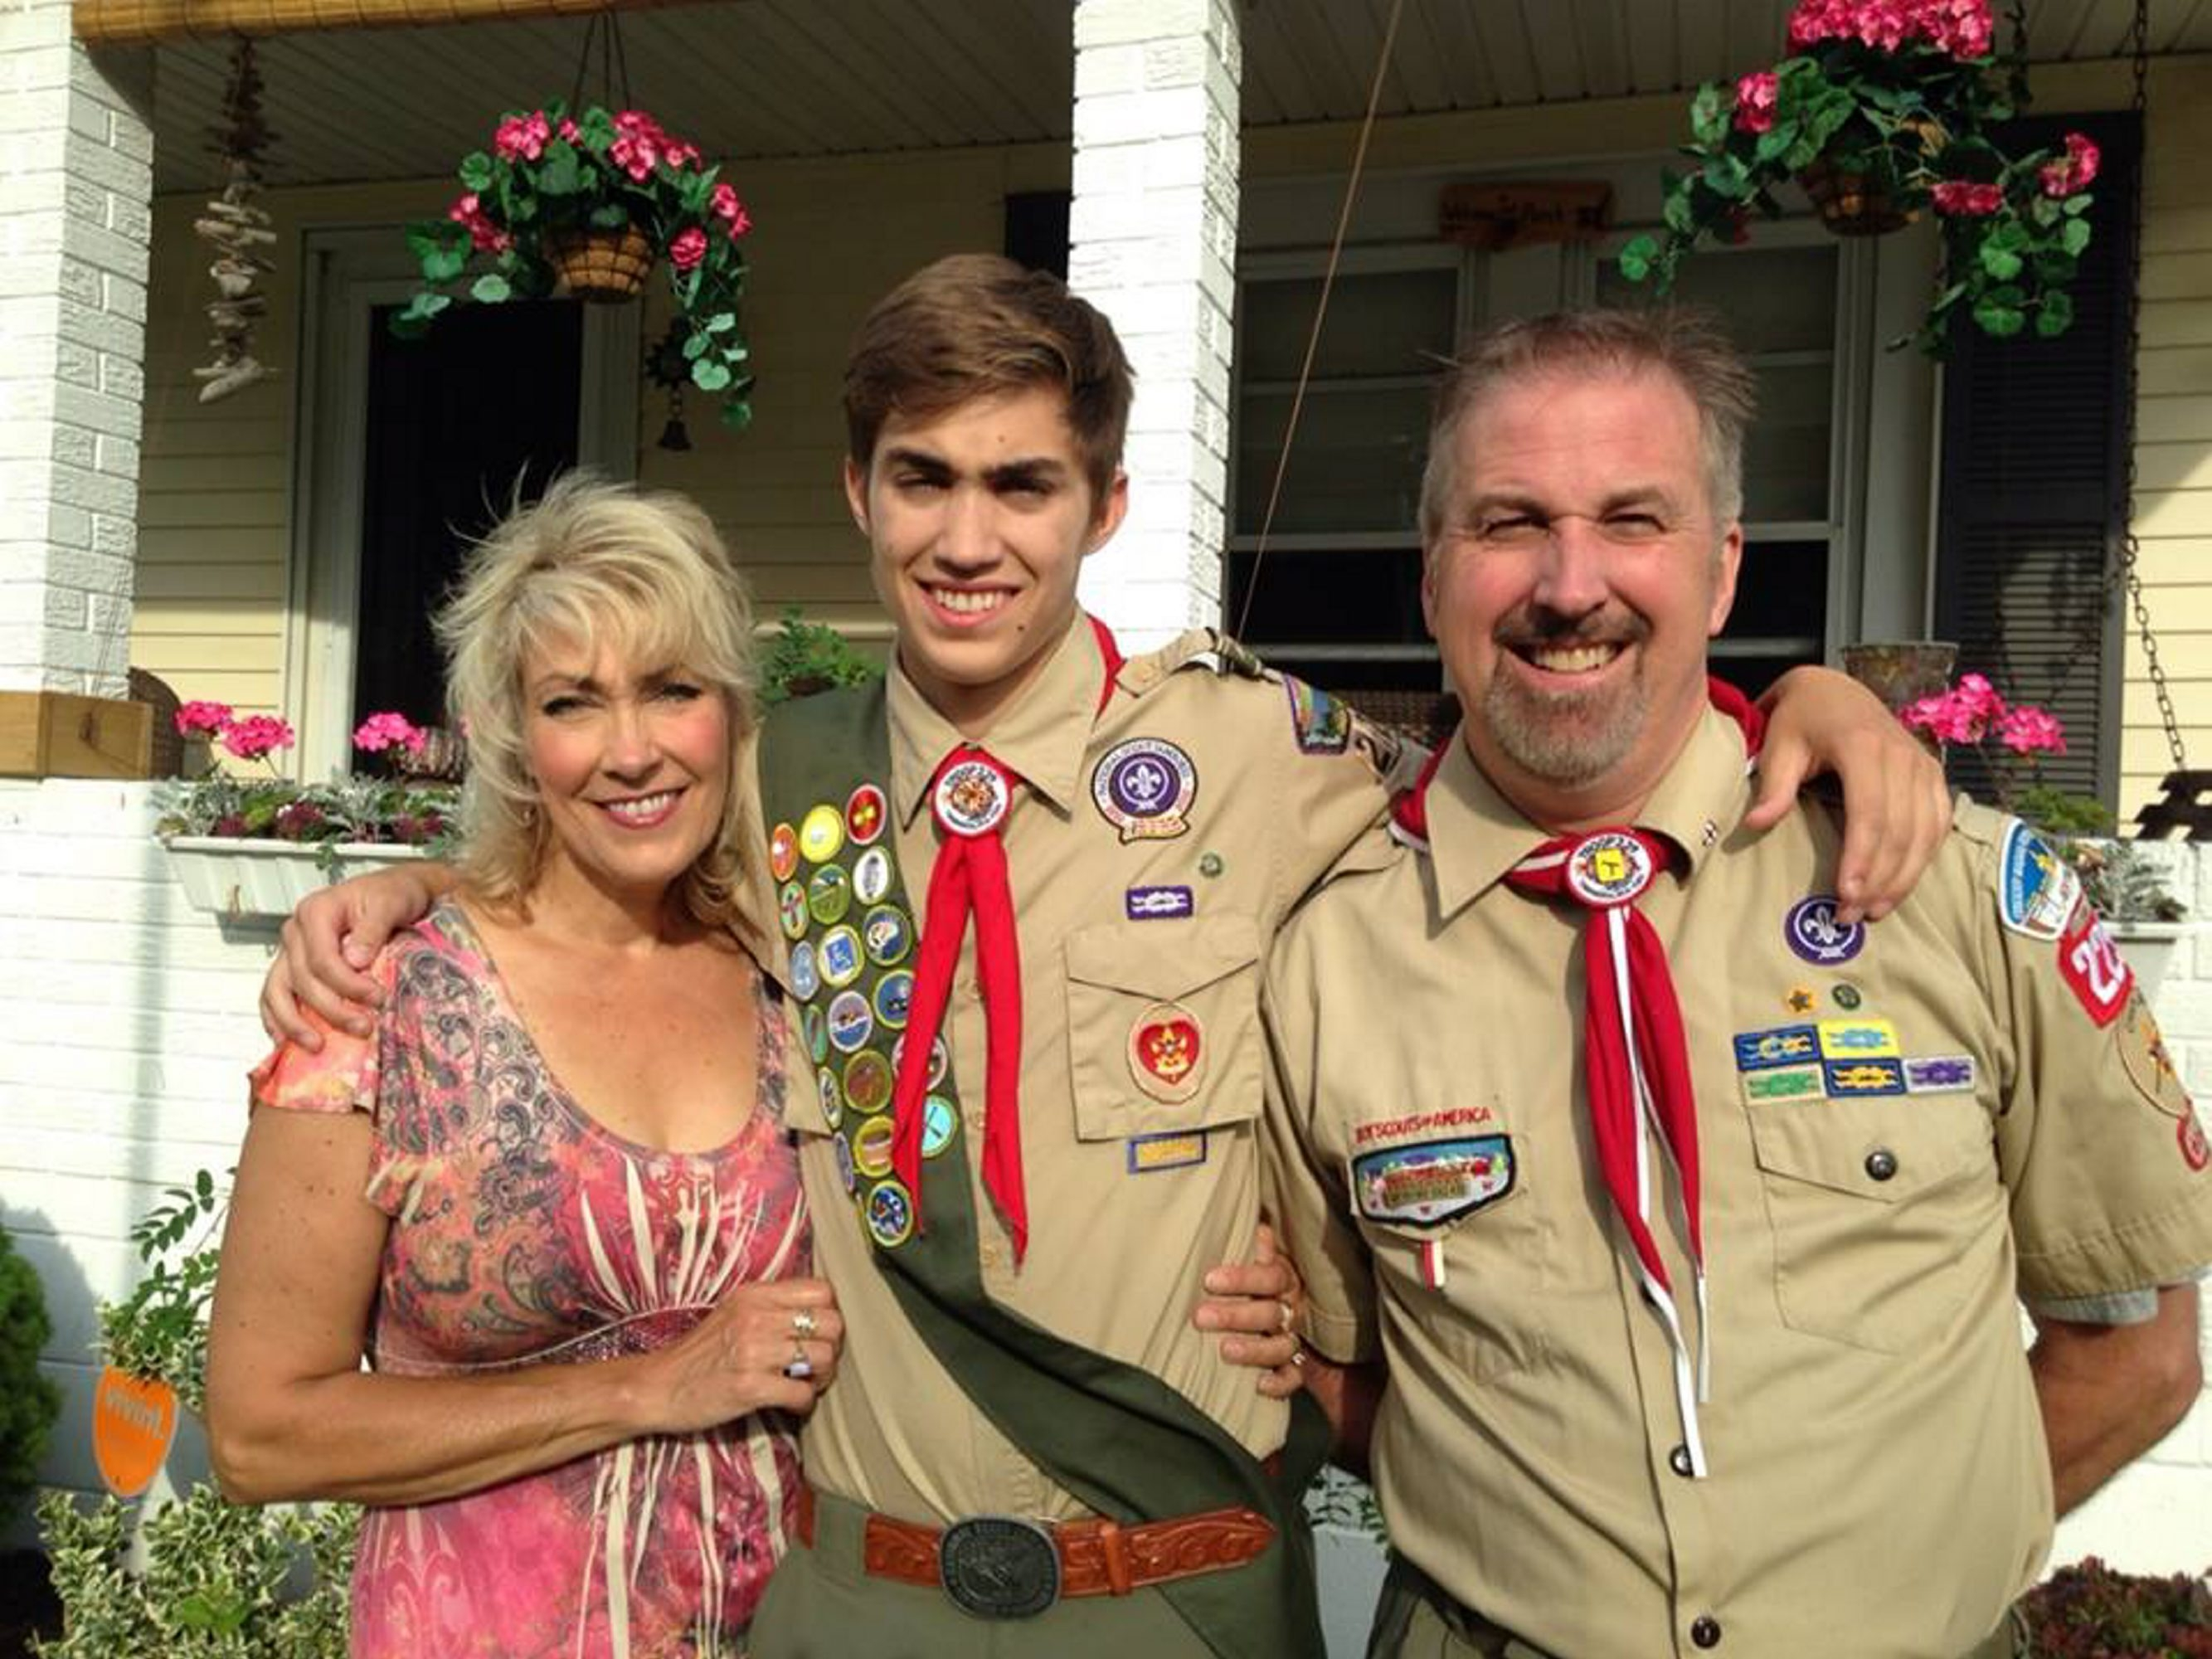 Jed Woomer, center, with his parents on June 10, 2014. Jed was an Eagle Scout and 2014 Tonawanda High School graduate who died April 8 after cancer surgery.